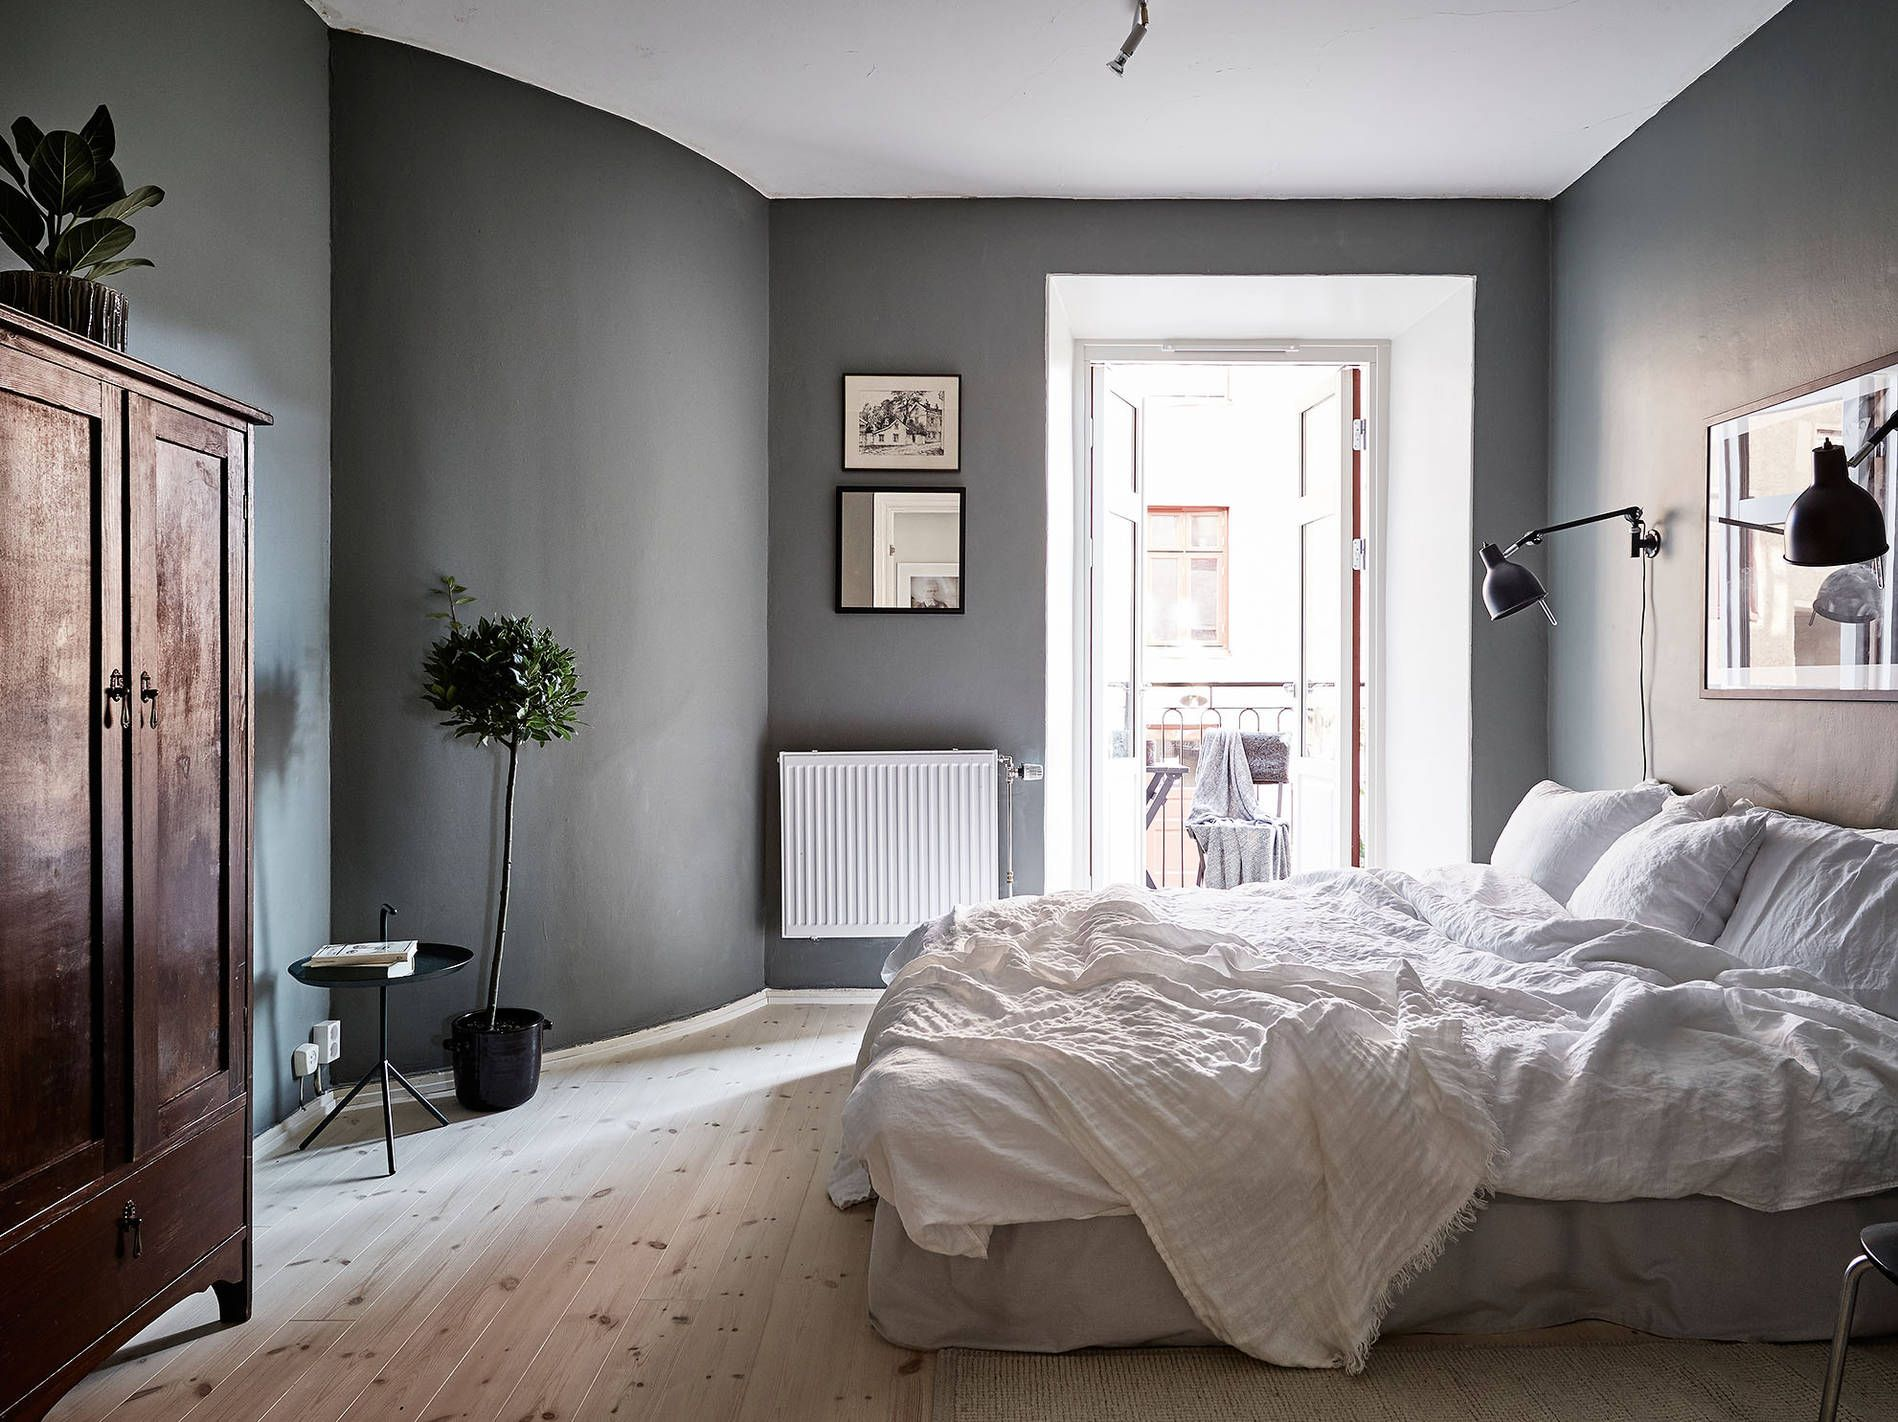 1000+ images about Bedroom on Pinterest